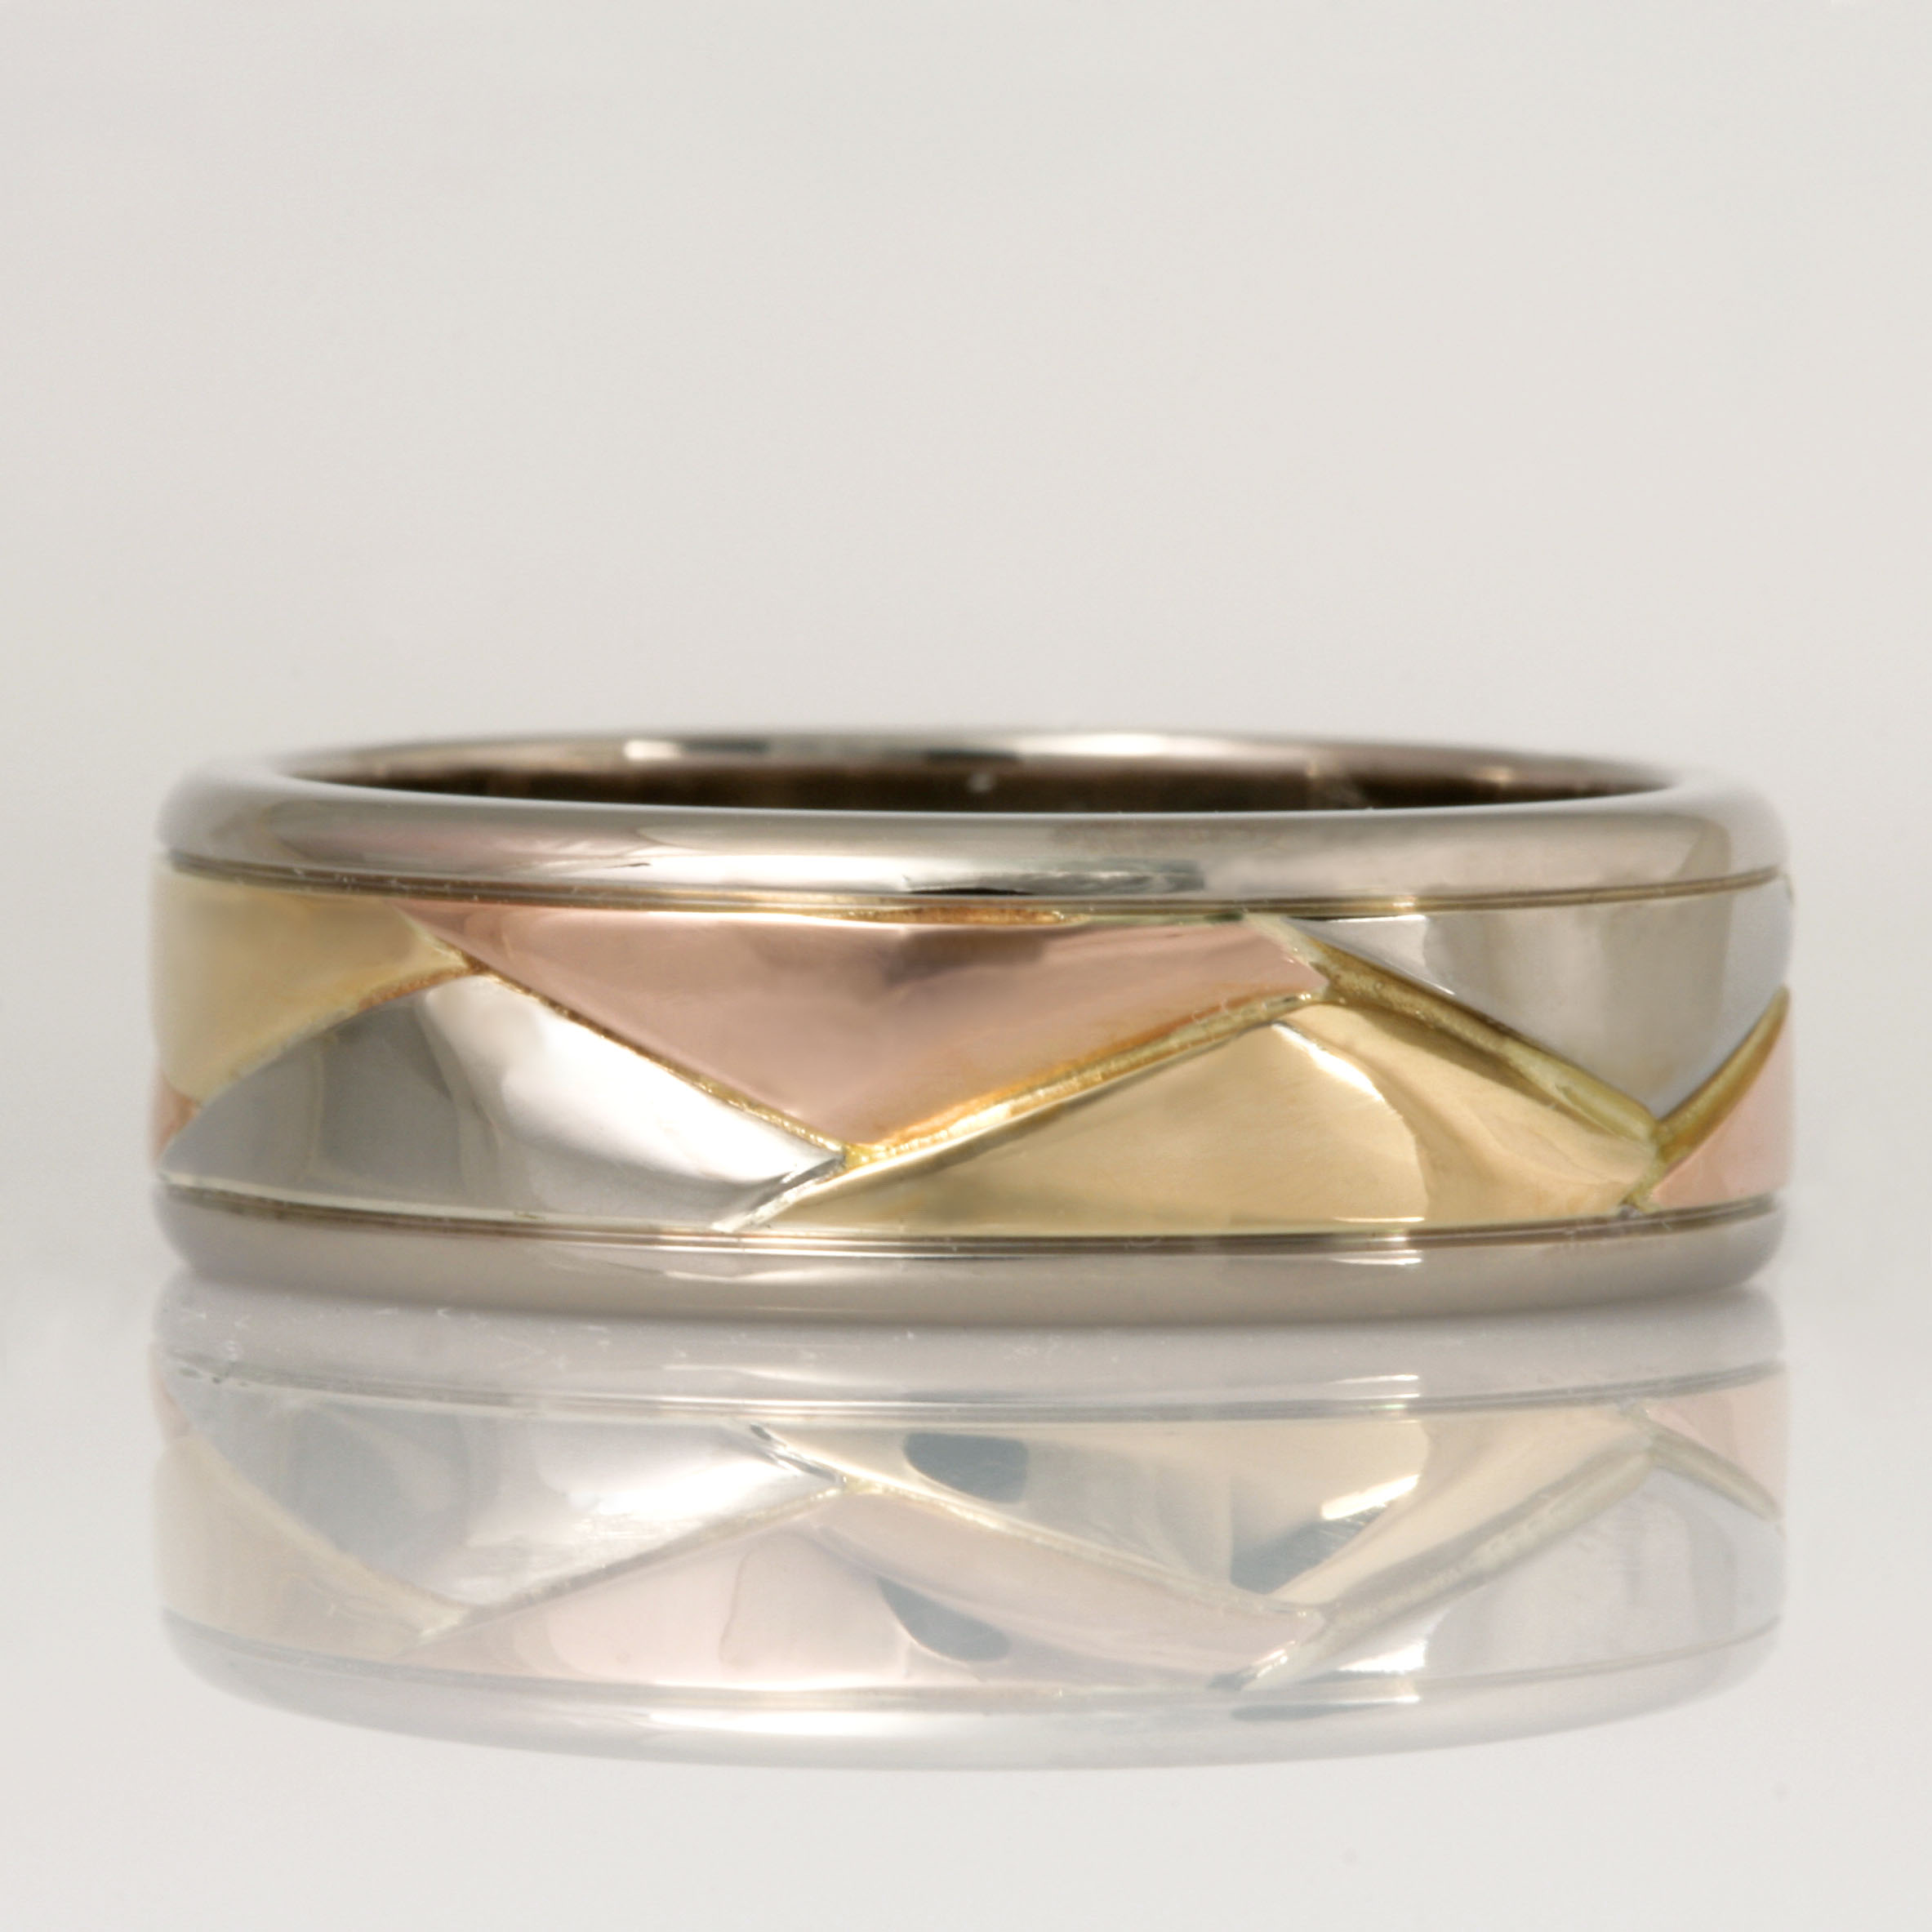 Handmade gents 18ct yellow, rose and white gold wedding ring